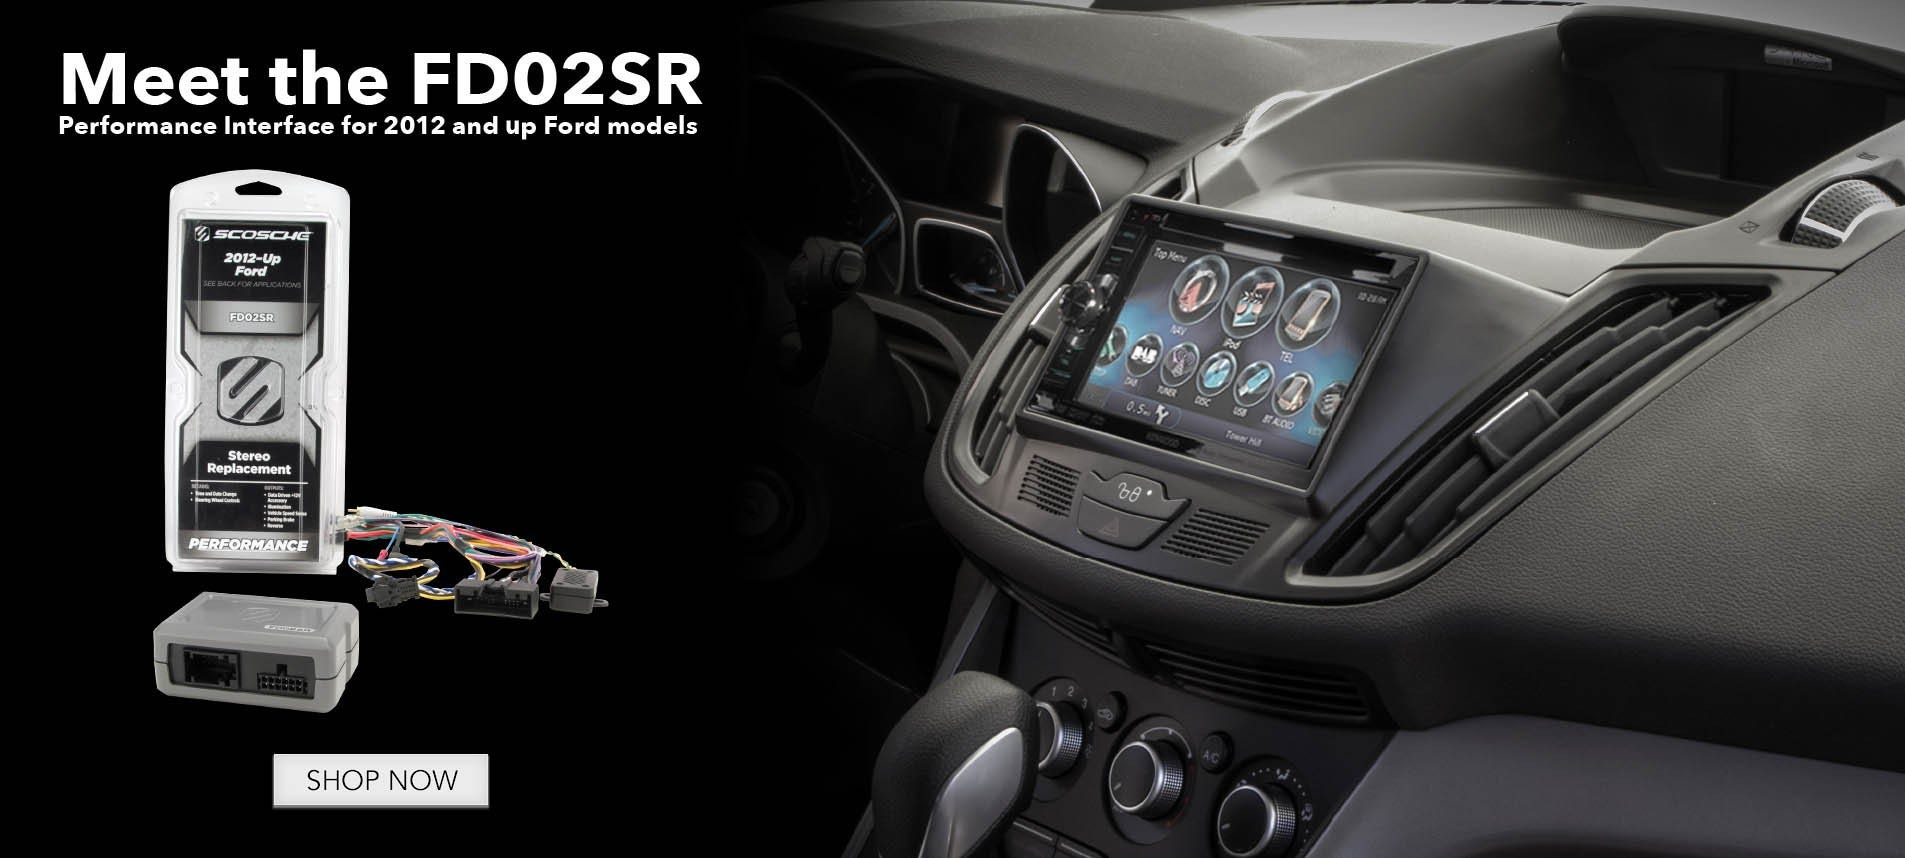 FD02SR Ford performance interface